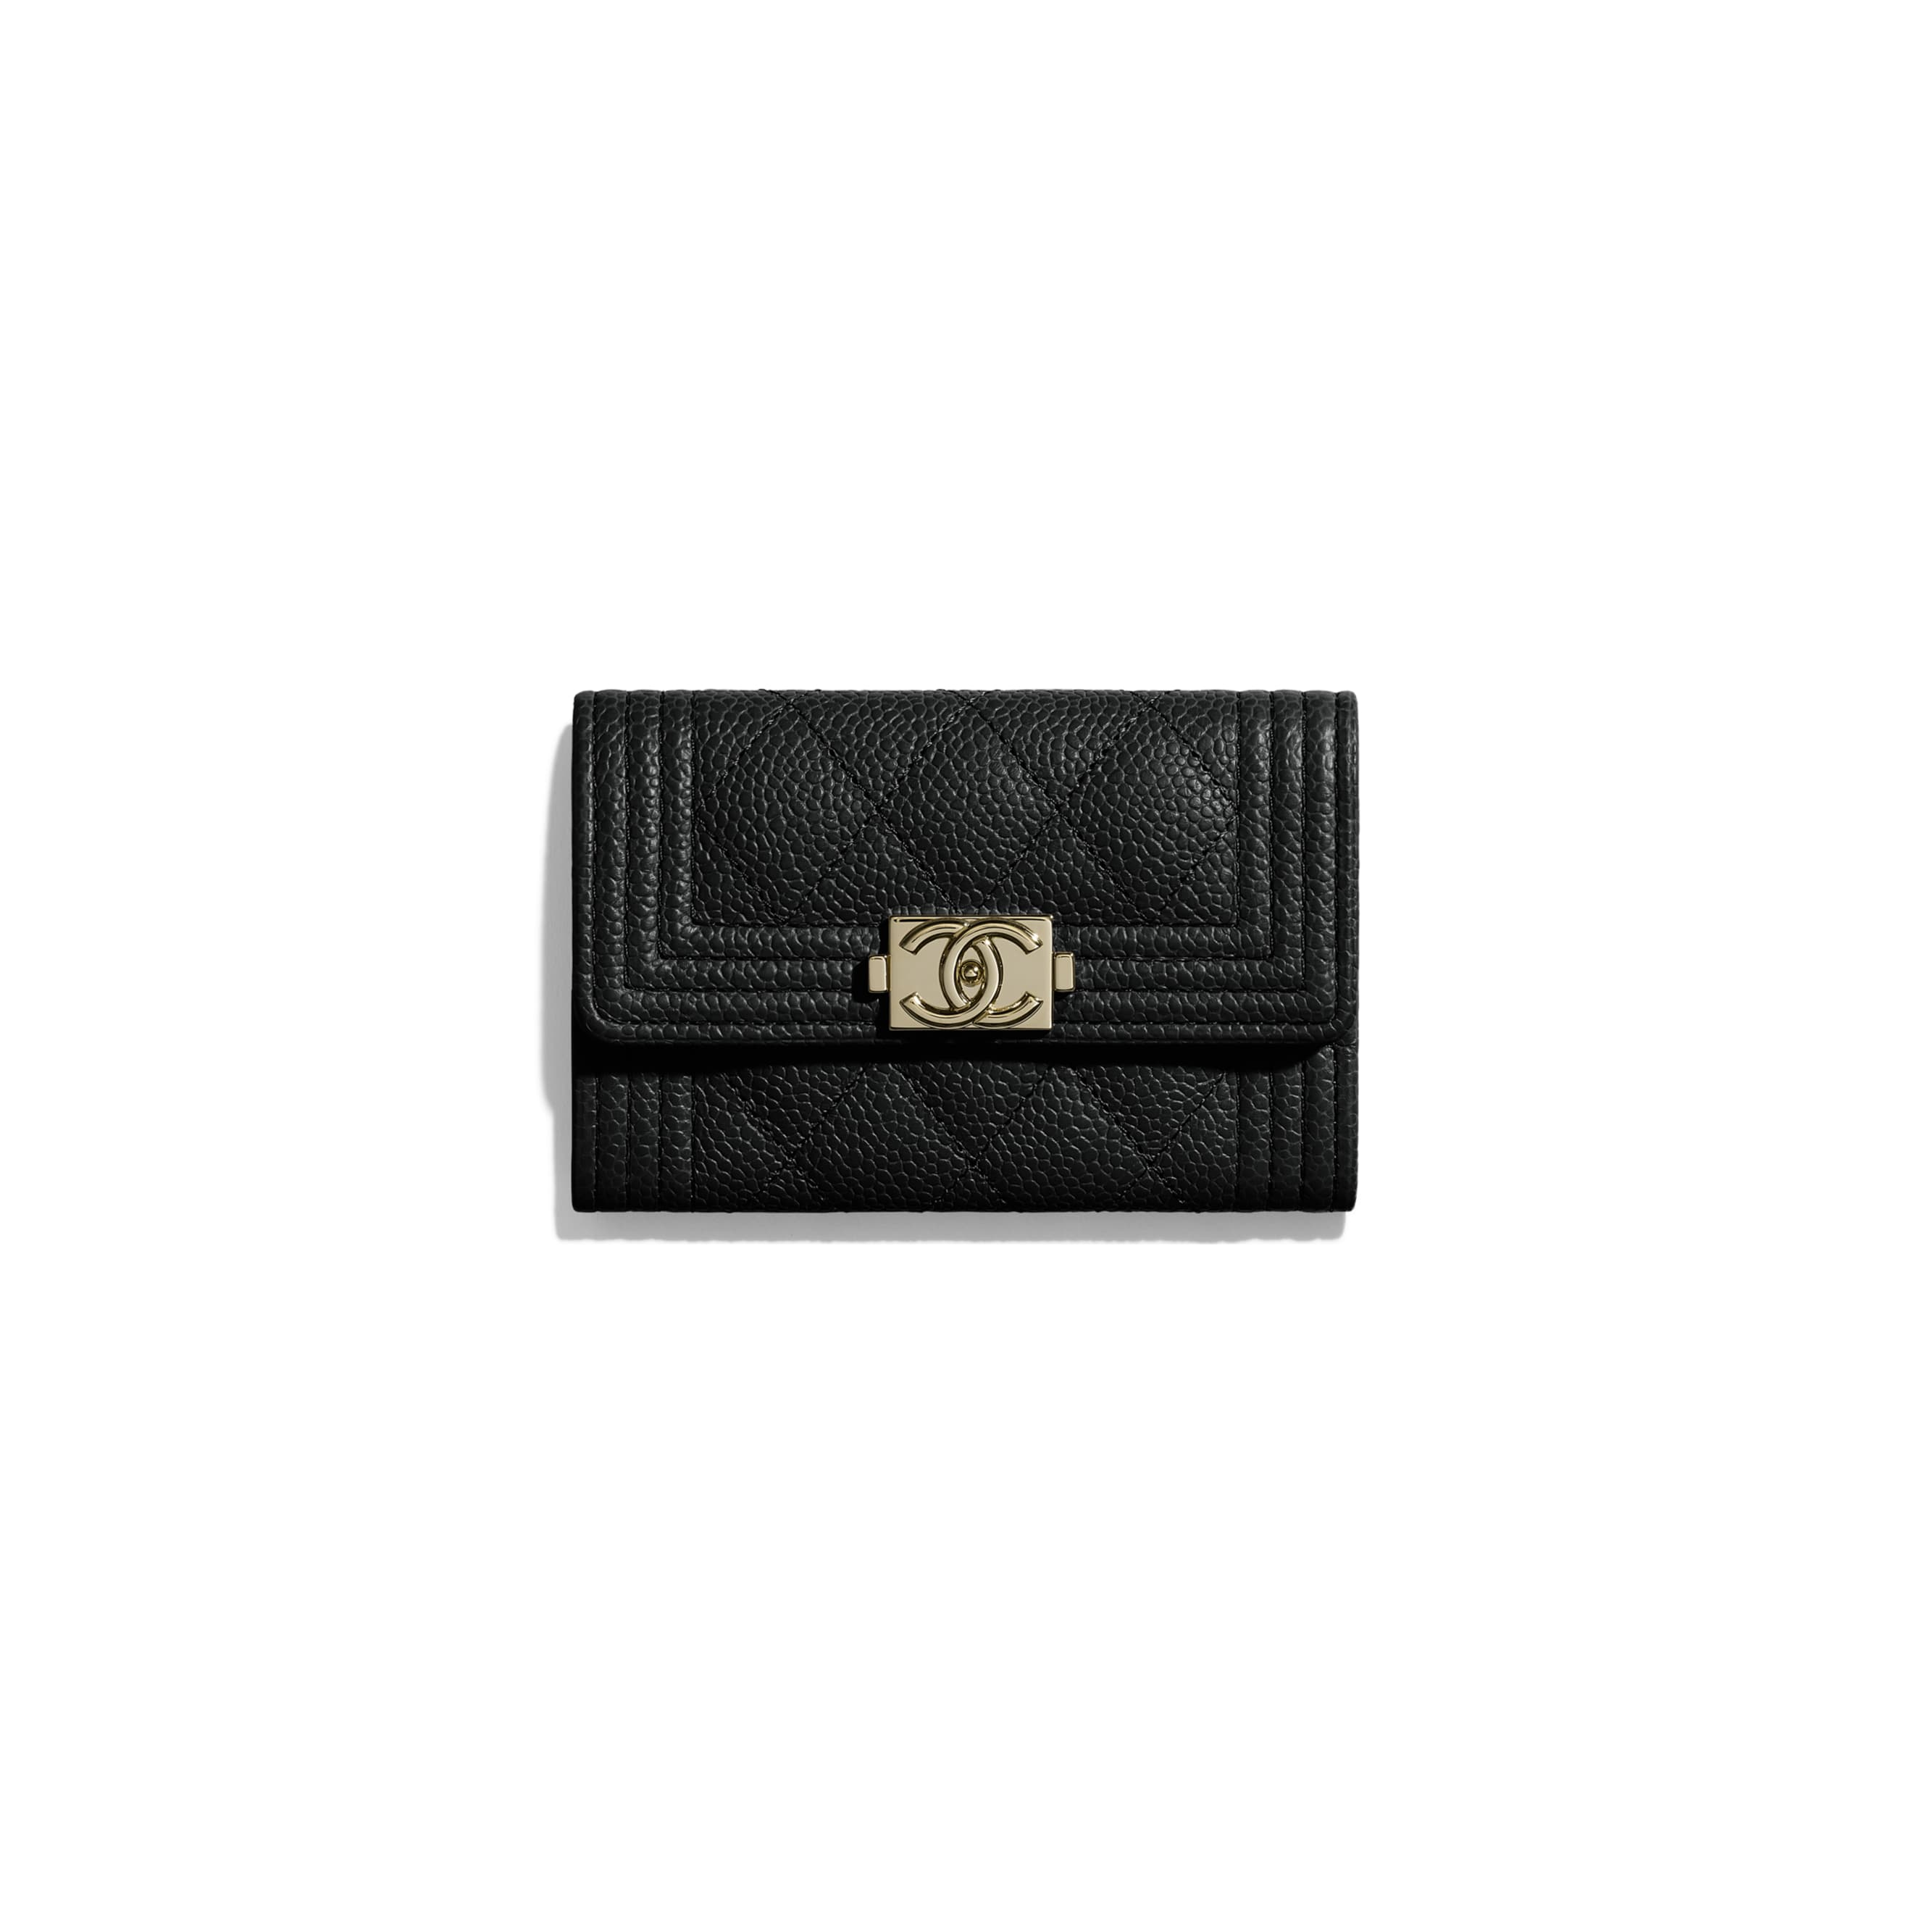 BOY CHANEL Flap Card Holder - Black - Grained Calfskin & Gold-Tone Metal - CHANEL - Default view - see standard sized version